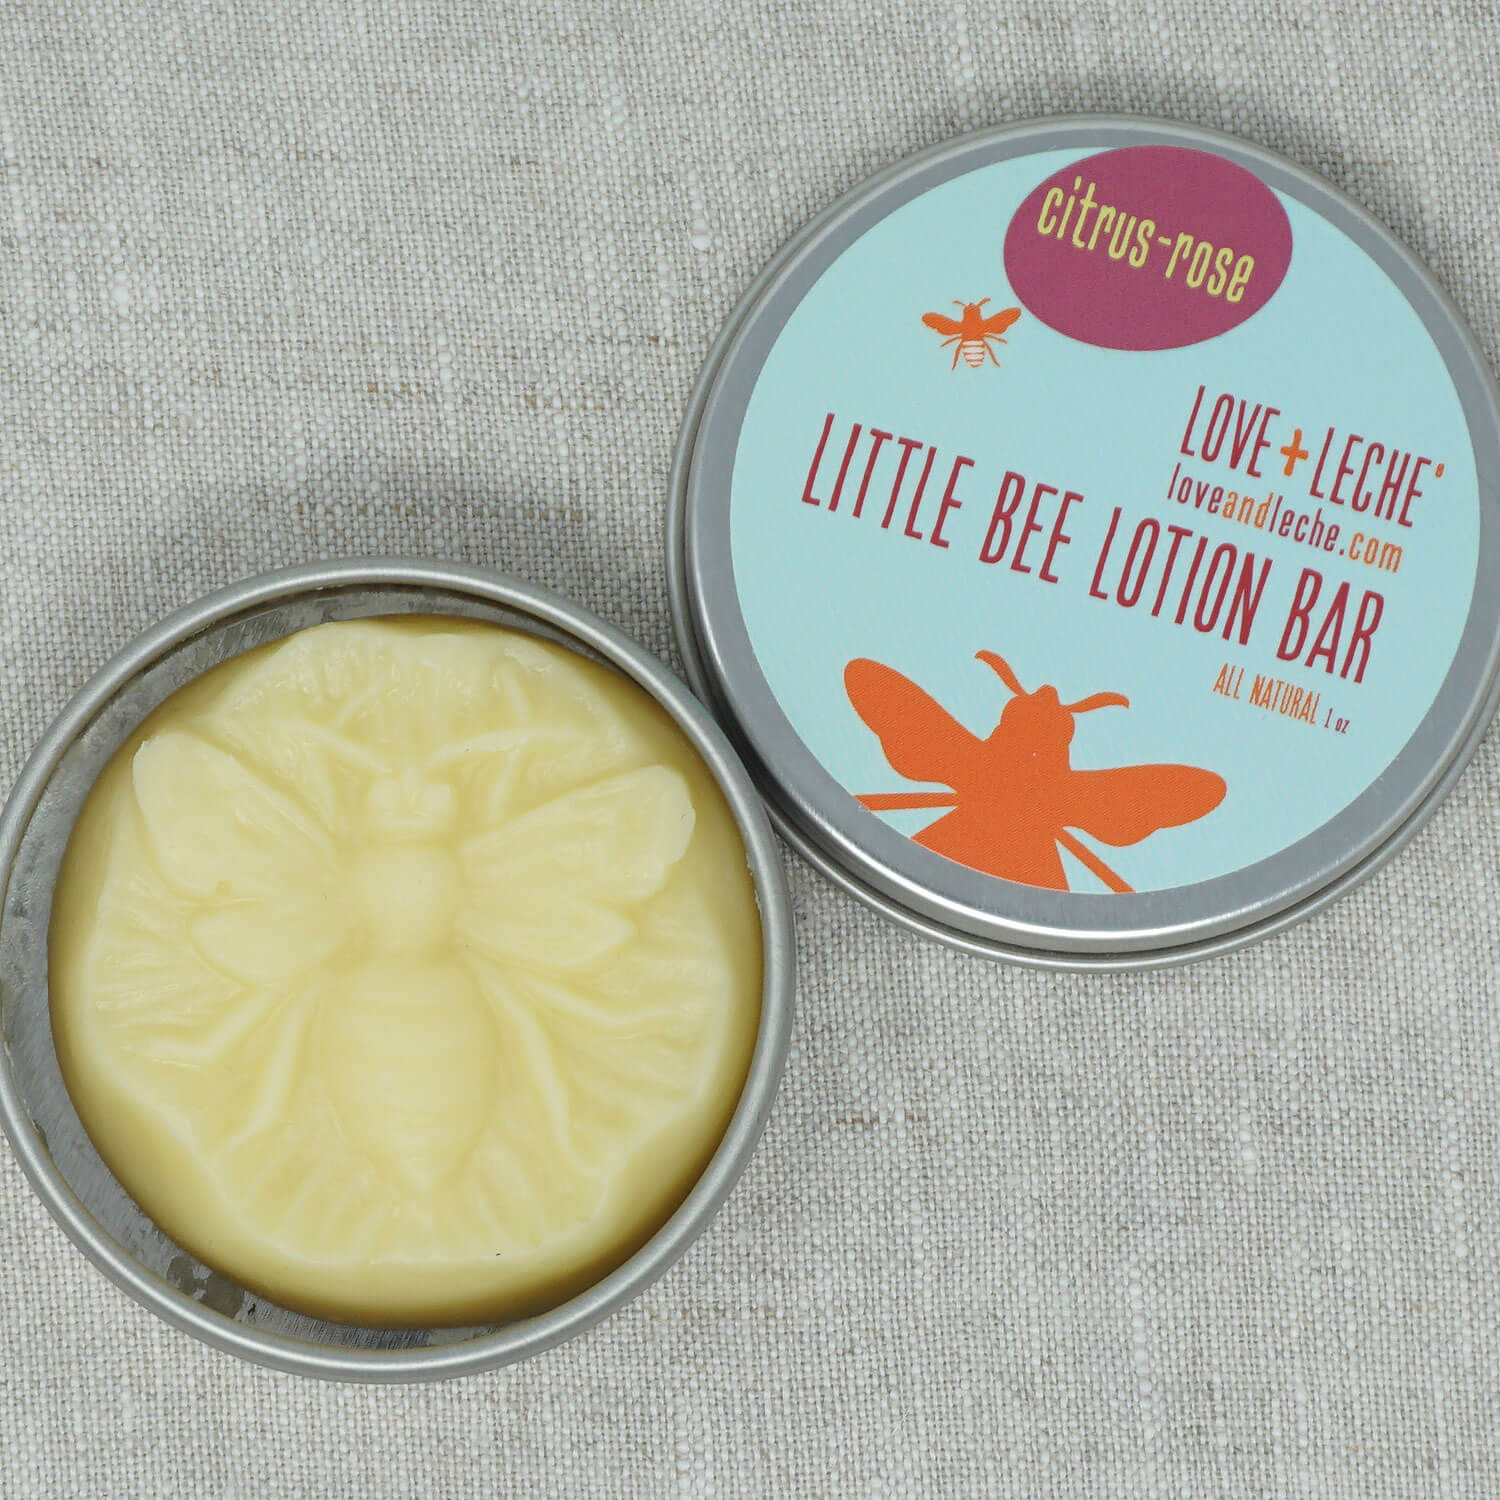 Love + Leche Little Bee Lotion Bar - Citrus & Rose | Yarn Worx